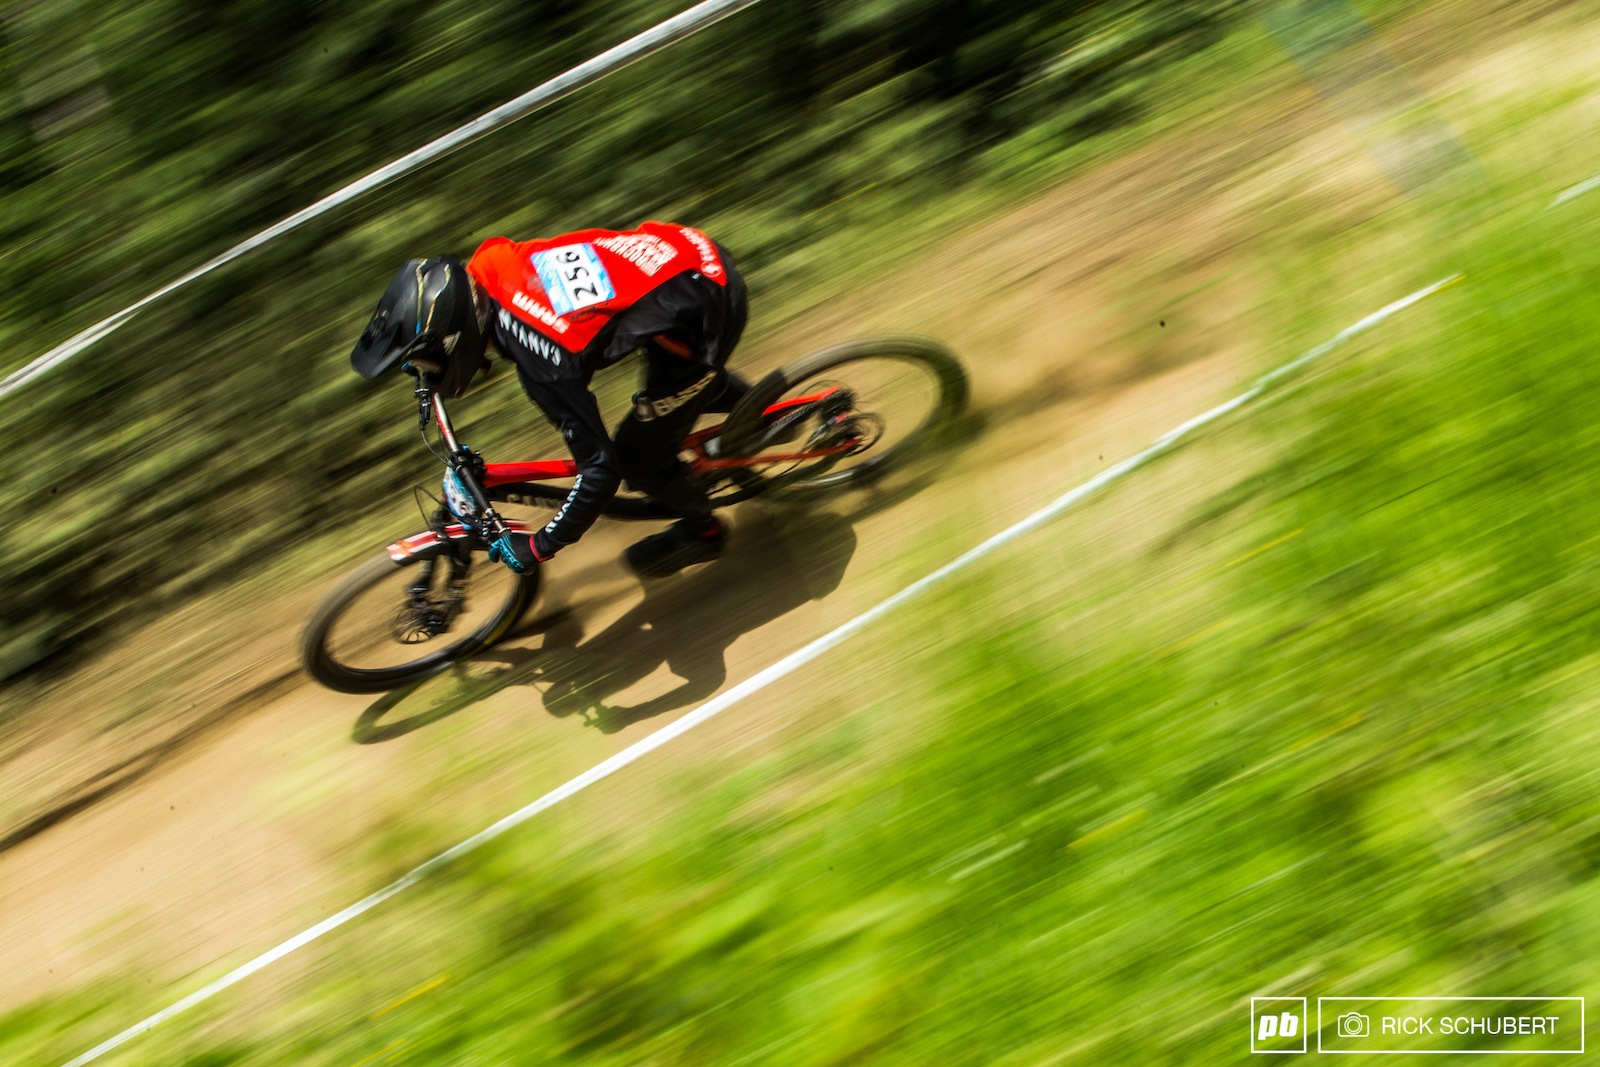 Simon Maurer seems to be on a high after his first podium finish in Willingen and went fastest in the u19 male